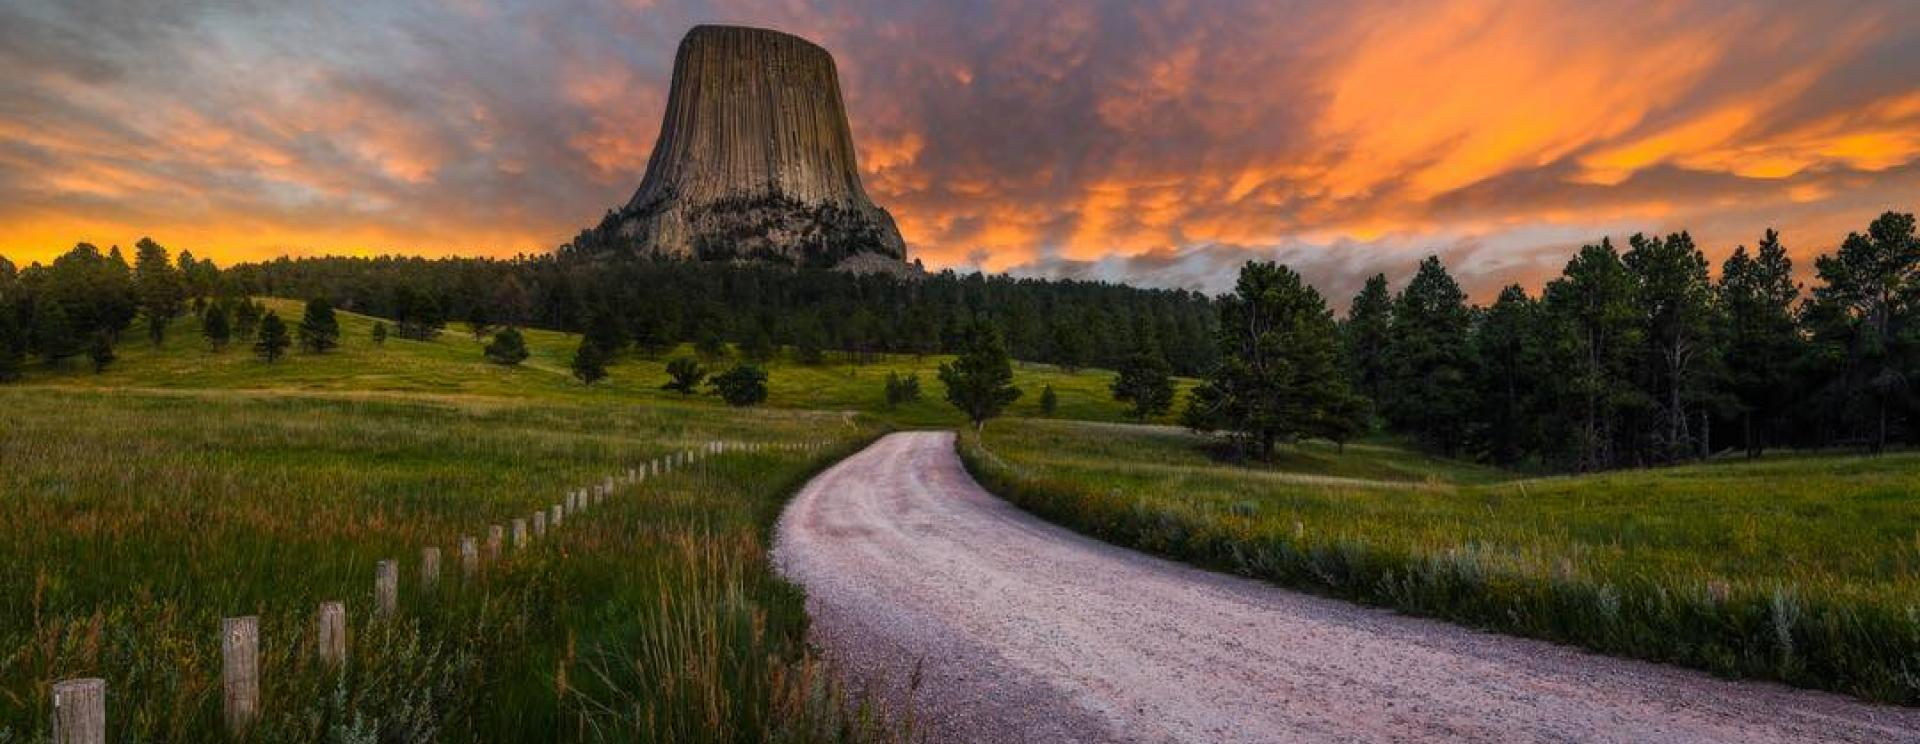 The 5 Most Remarkable Photos of the Black Hills and Badlands in August 2019